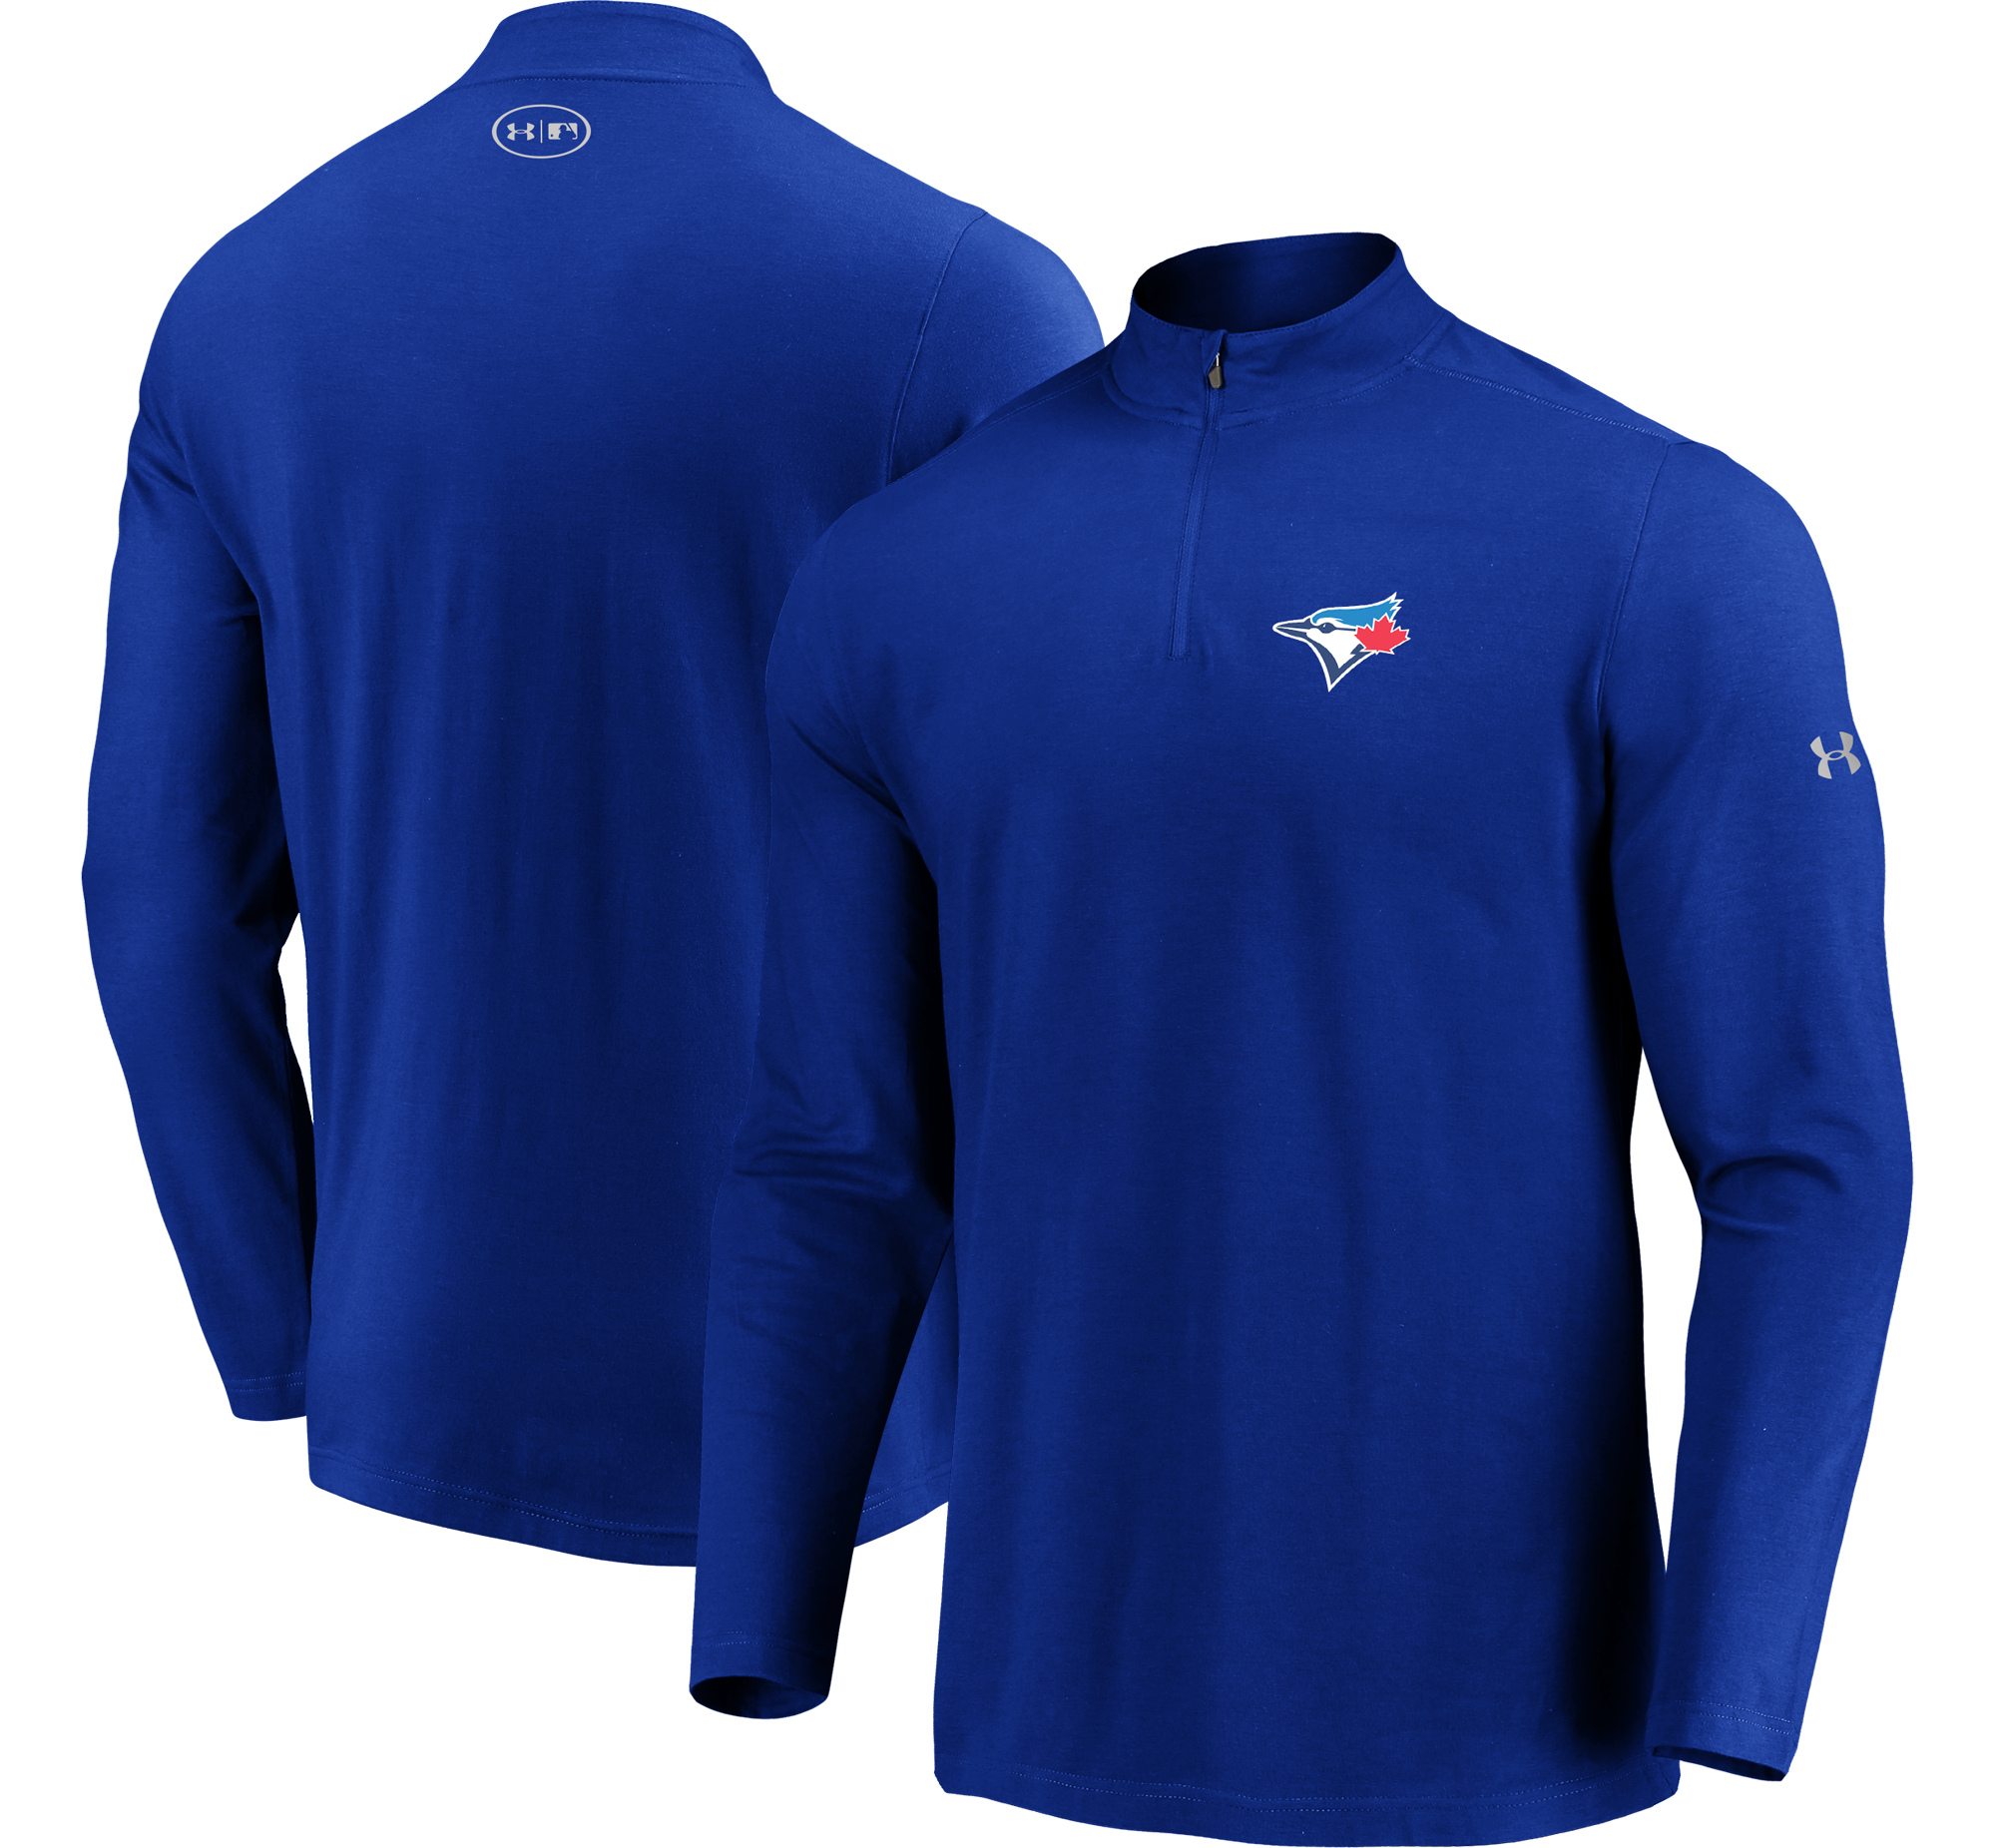 Toronto Blue Jays Under Armour Passion Performance Tri-Blend Quarter-Zip Pullover Jacket - Royal